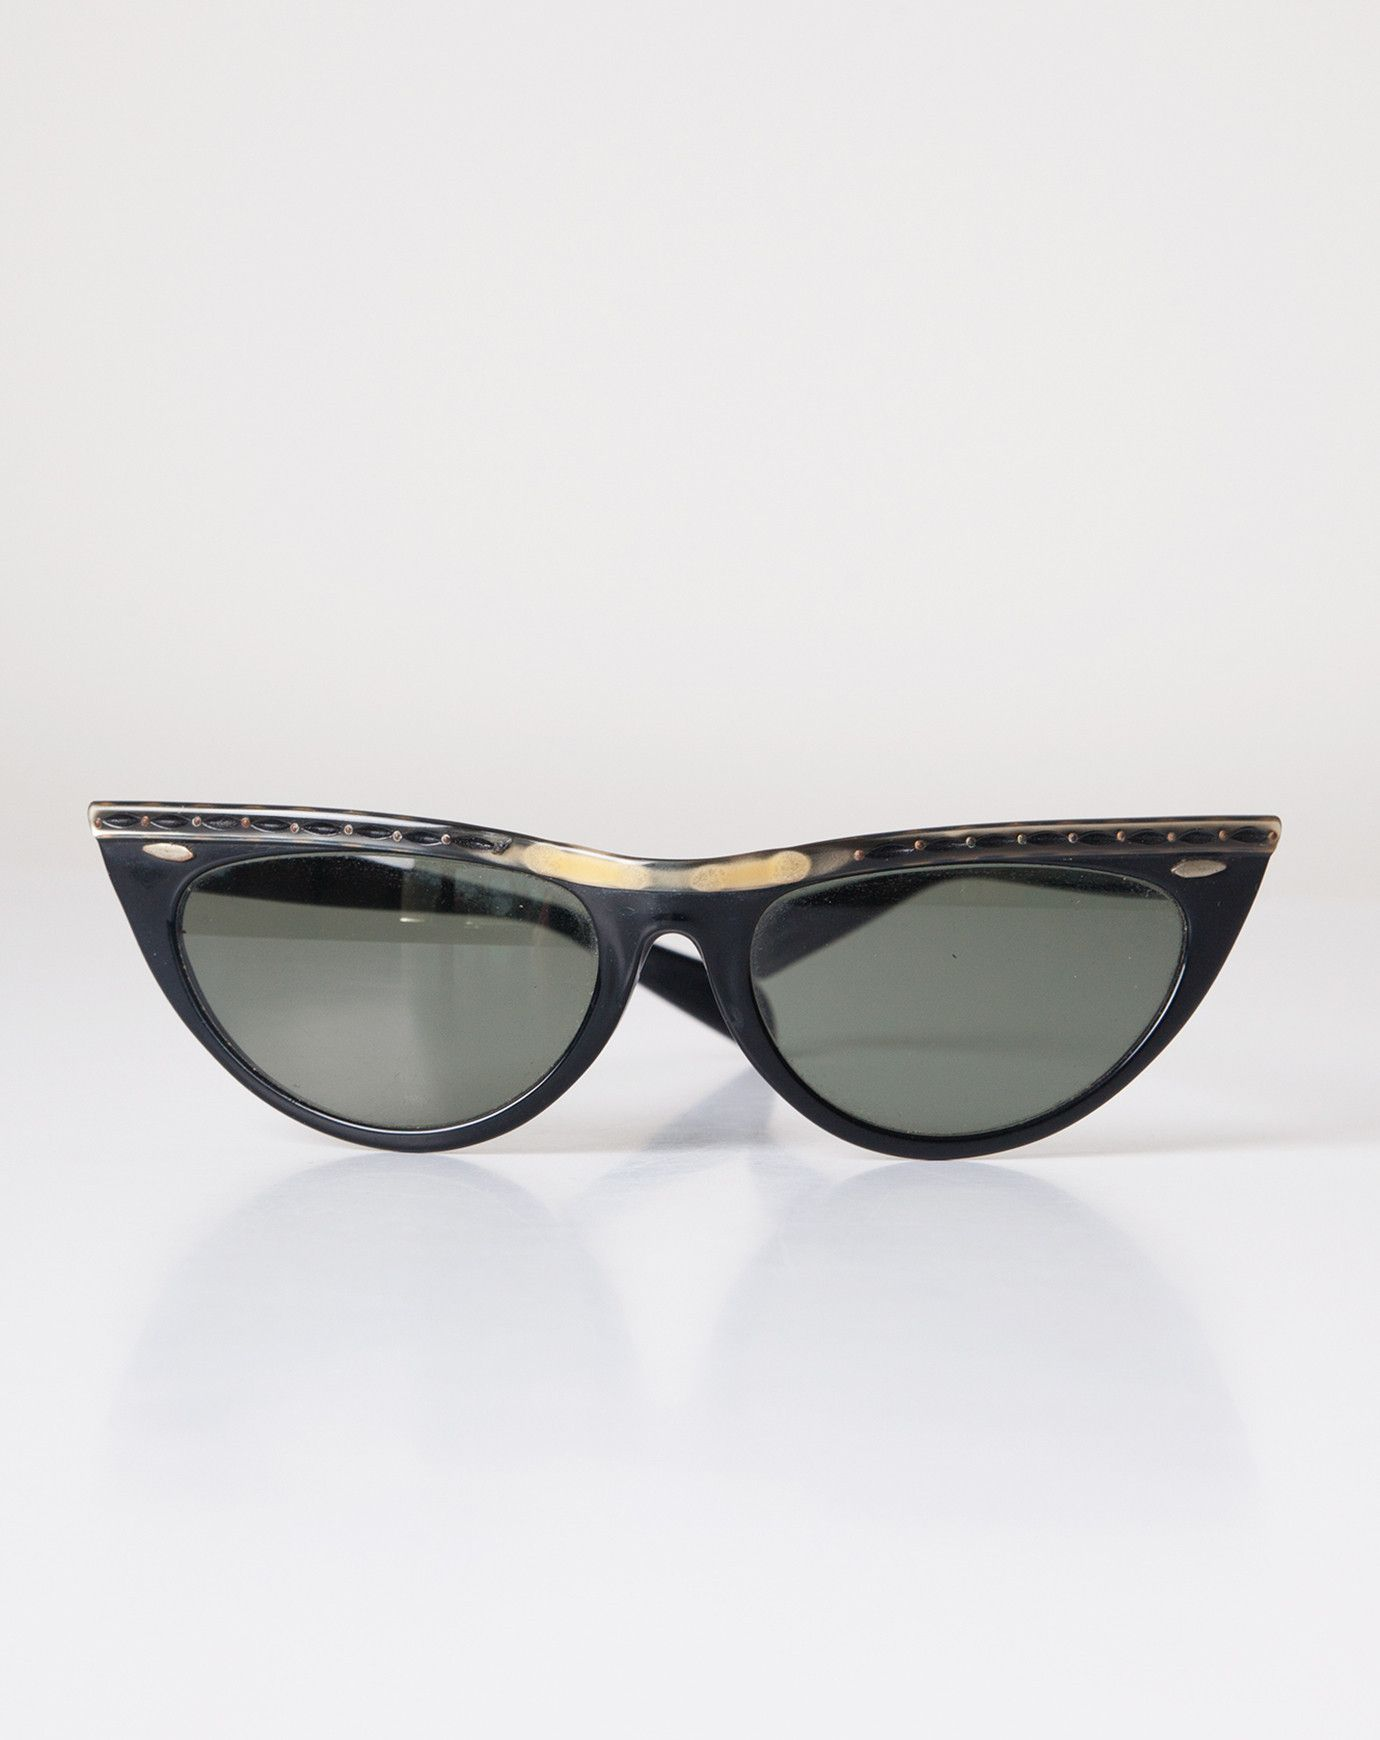 HUGE SALE! UP TO 75% OFF!! Vintage Ray Ban Egyptian Sunglasses ... 0d51b719d82cc